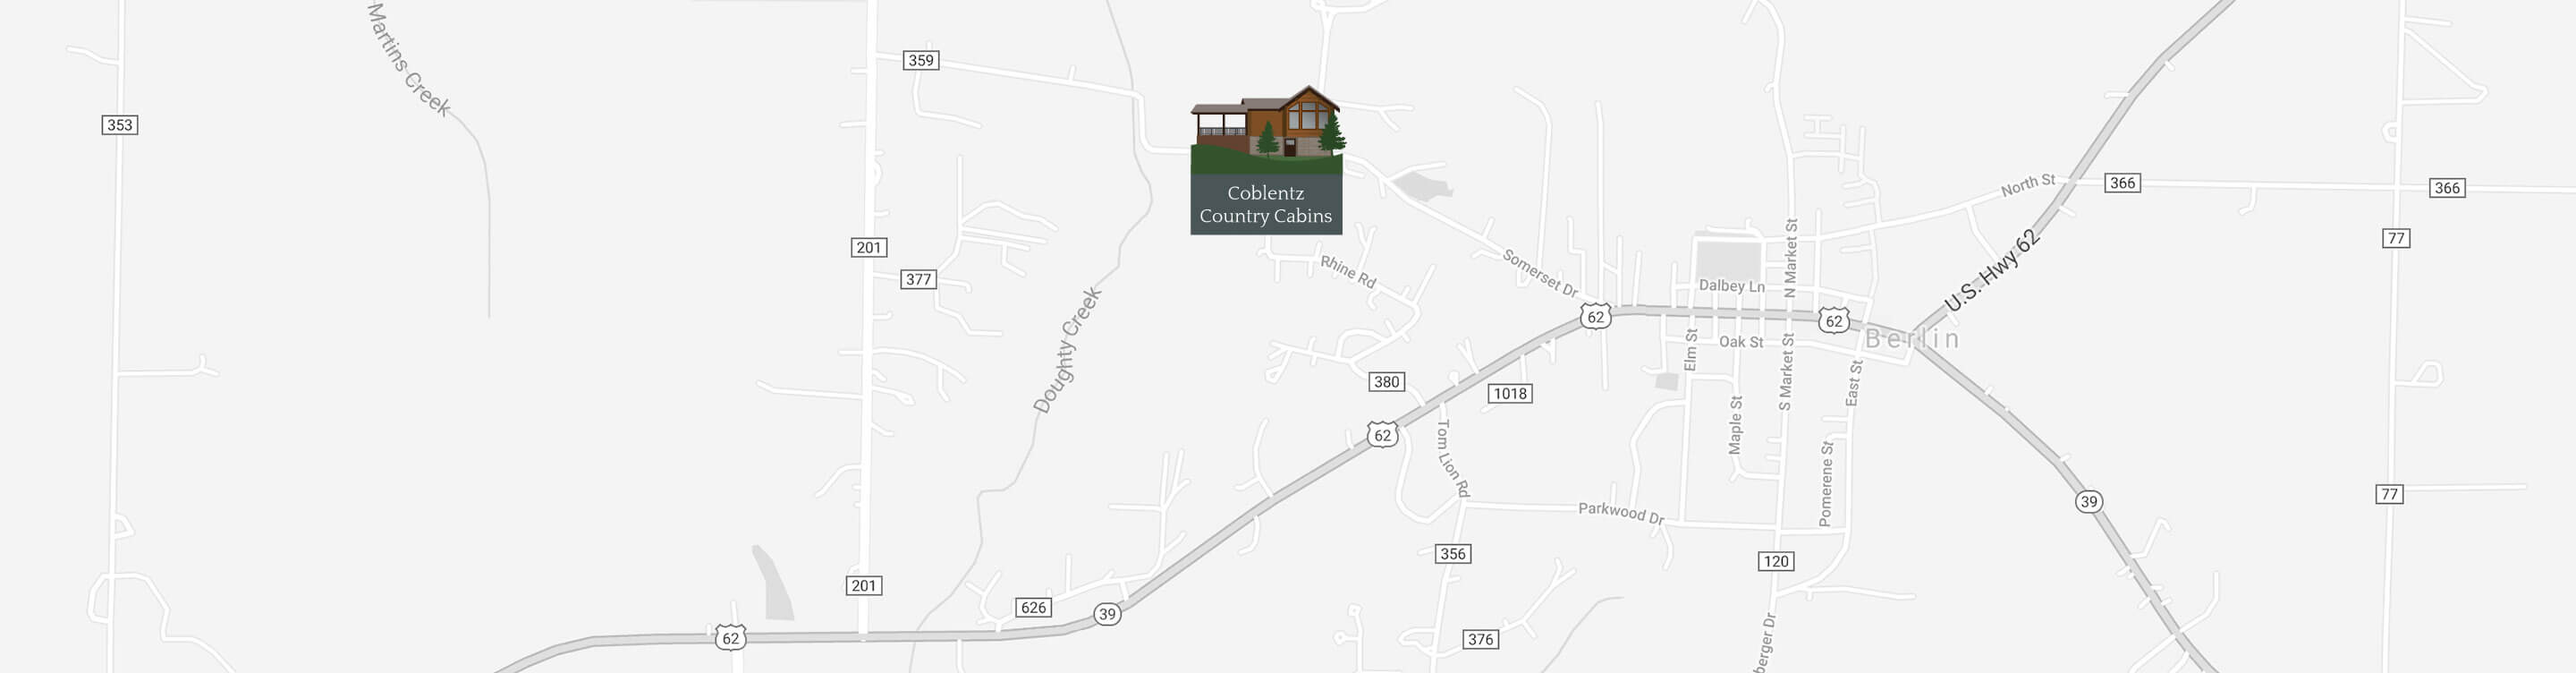 Map of Coblentz Country Cabins